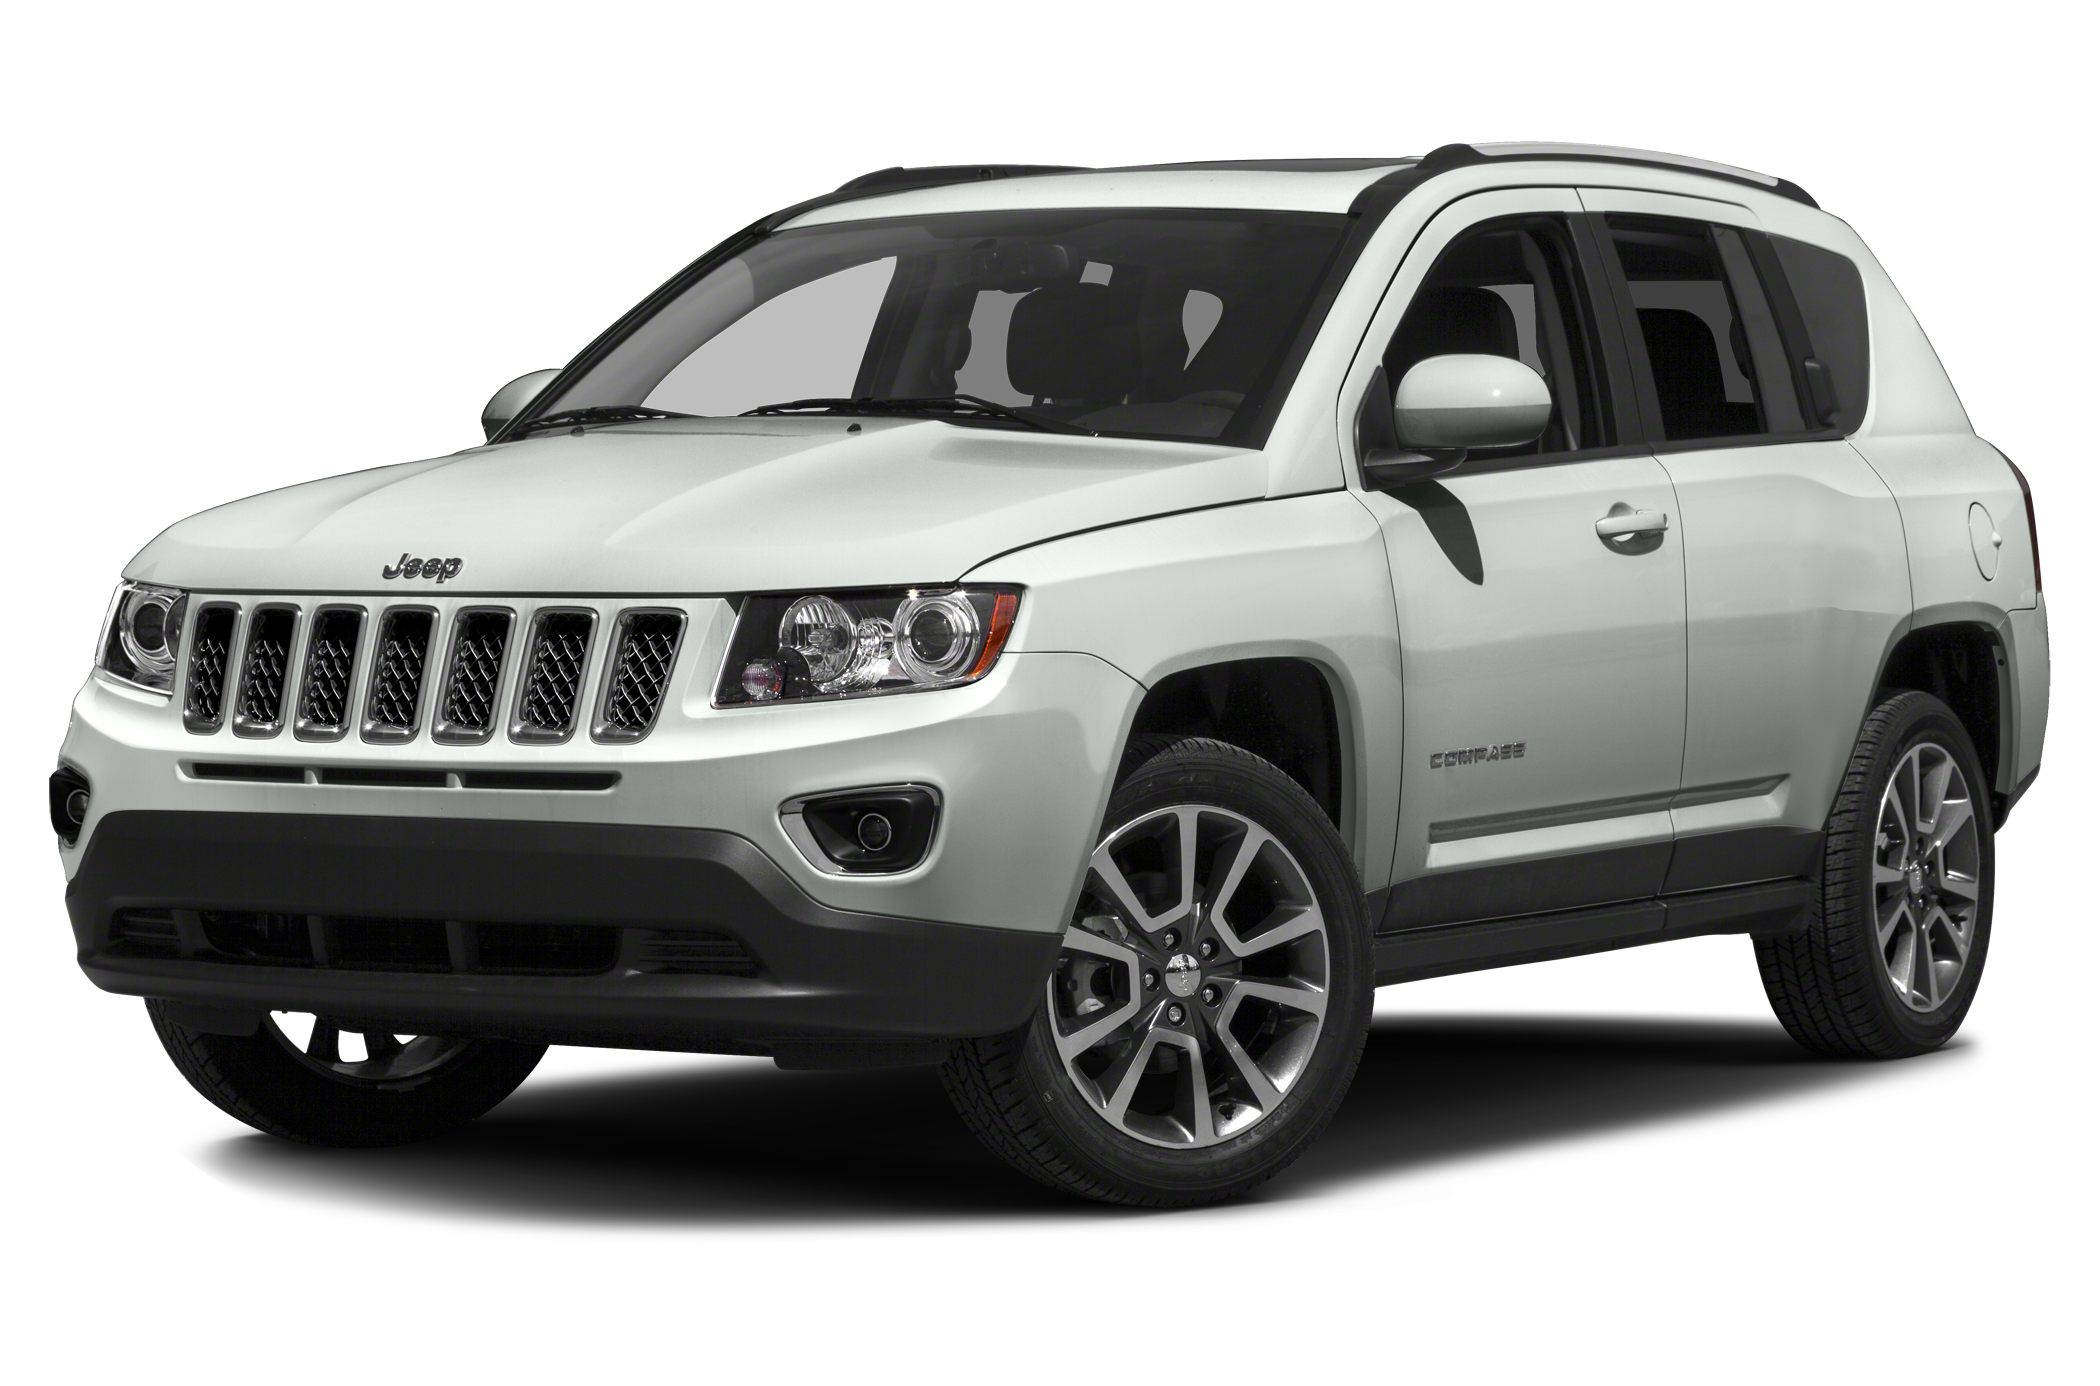 2014 Jeep Compass Sport SUV for sale in Show Low for $18,550 with 34,423 miles.